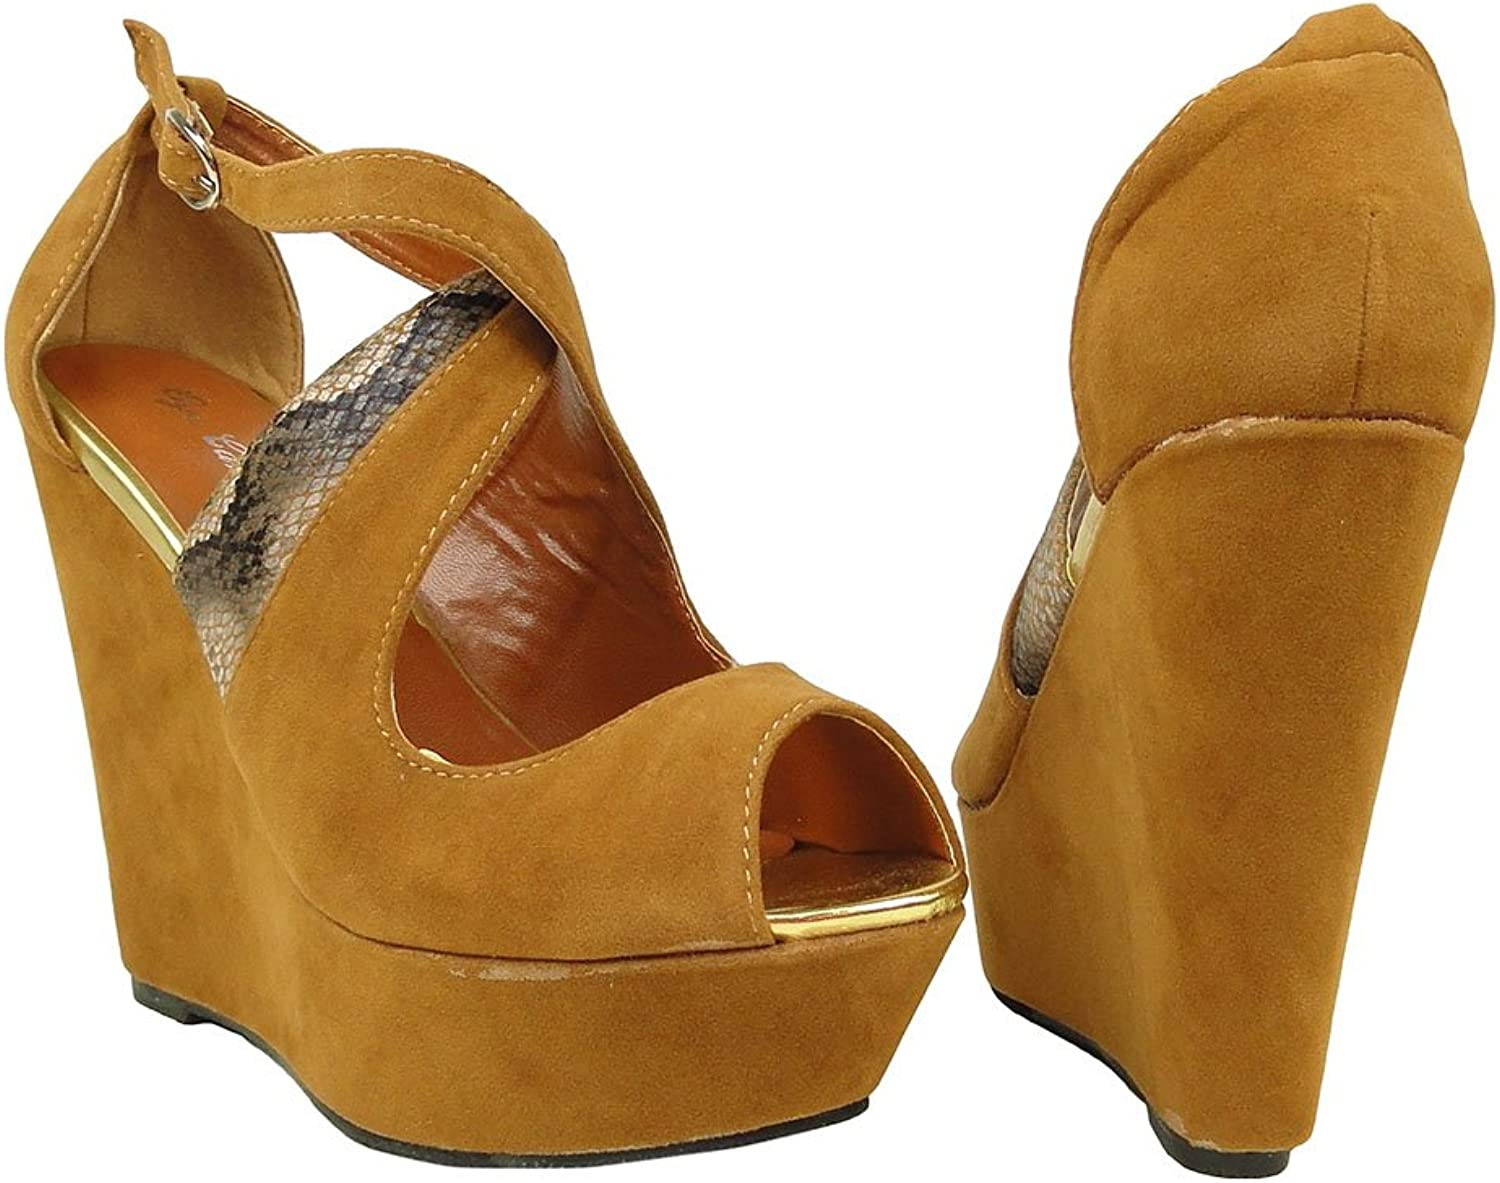 DS By KSC Womens Peep Toe Platform Strappy Snake Wedges Sandals Faux Suede Camel